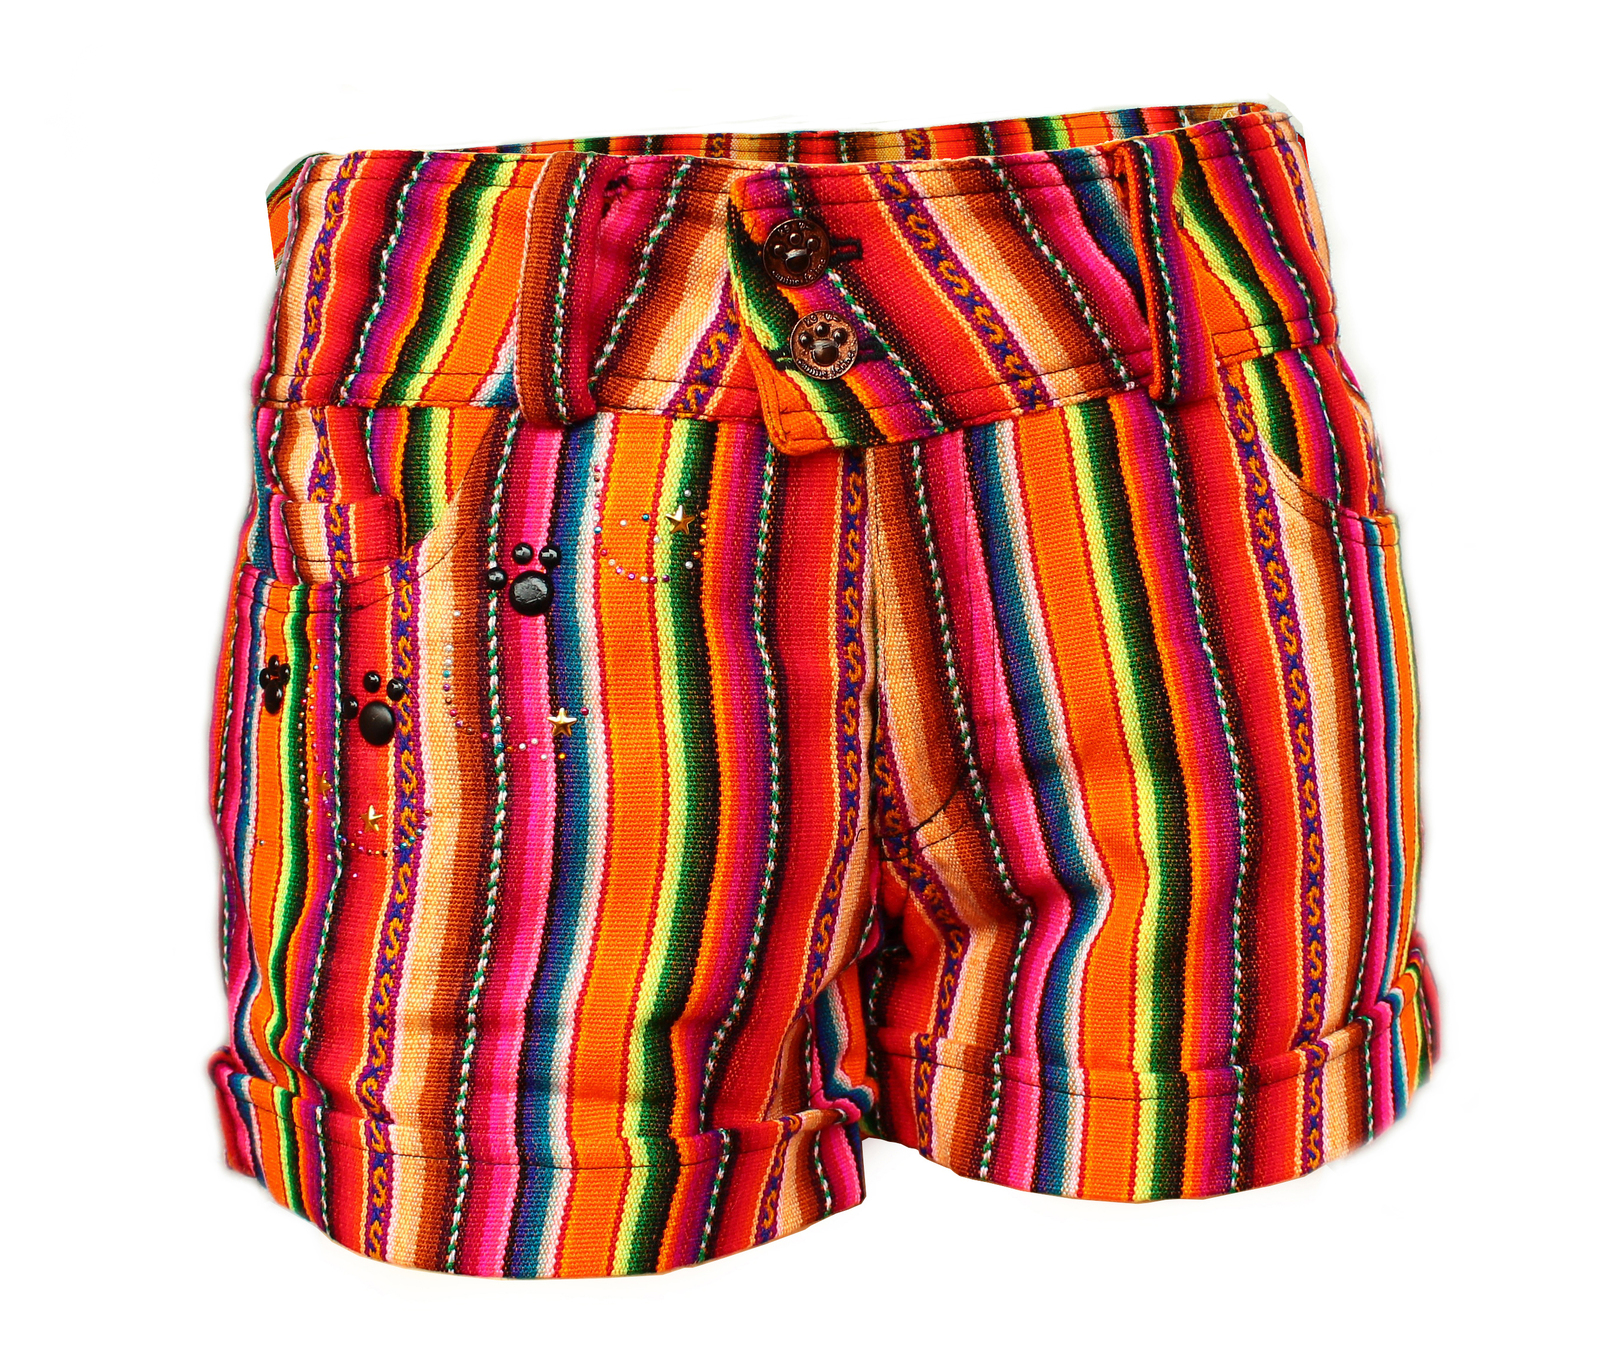 Primary image for Peruvian shorts, Multicolor, Andean fabric, low rise, low waist, Boho shorts